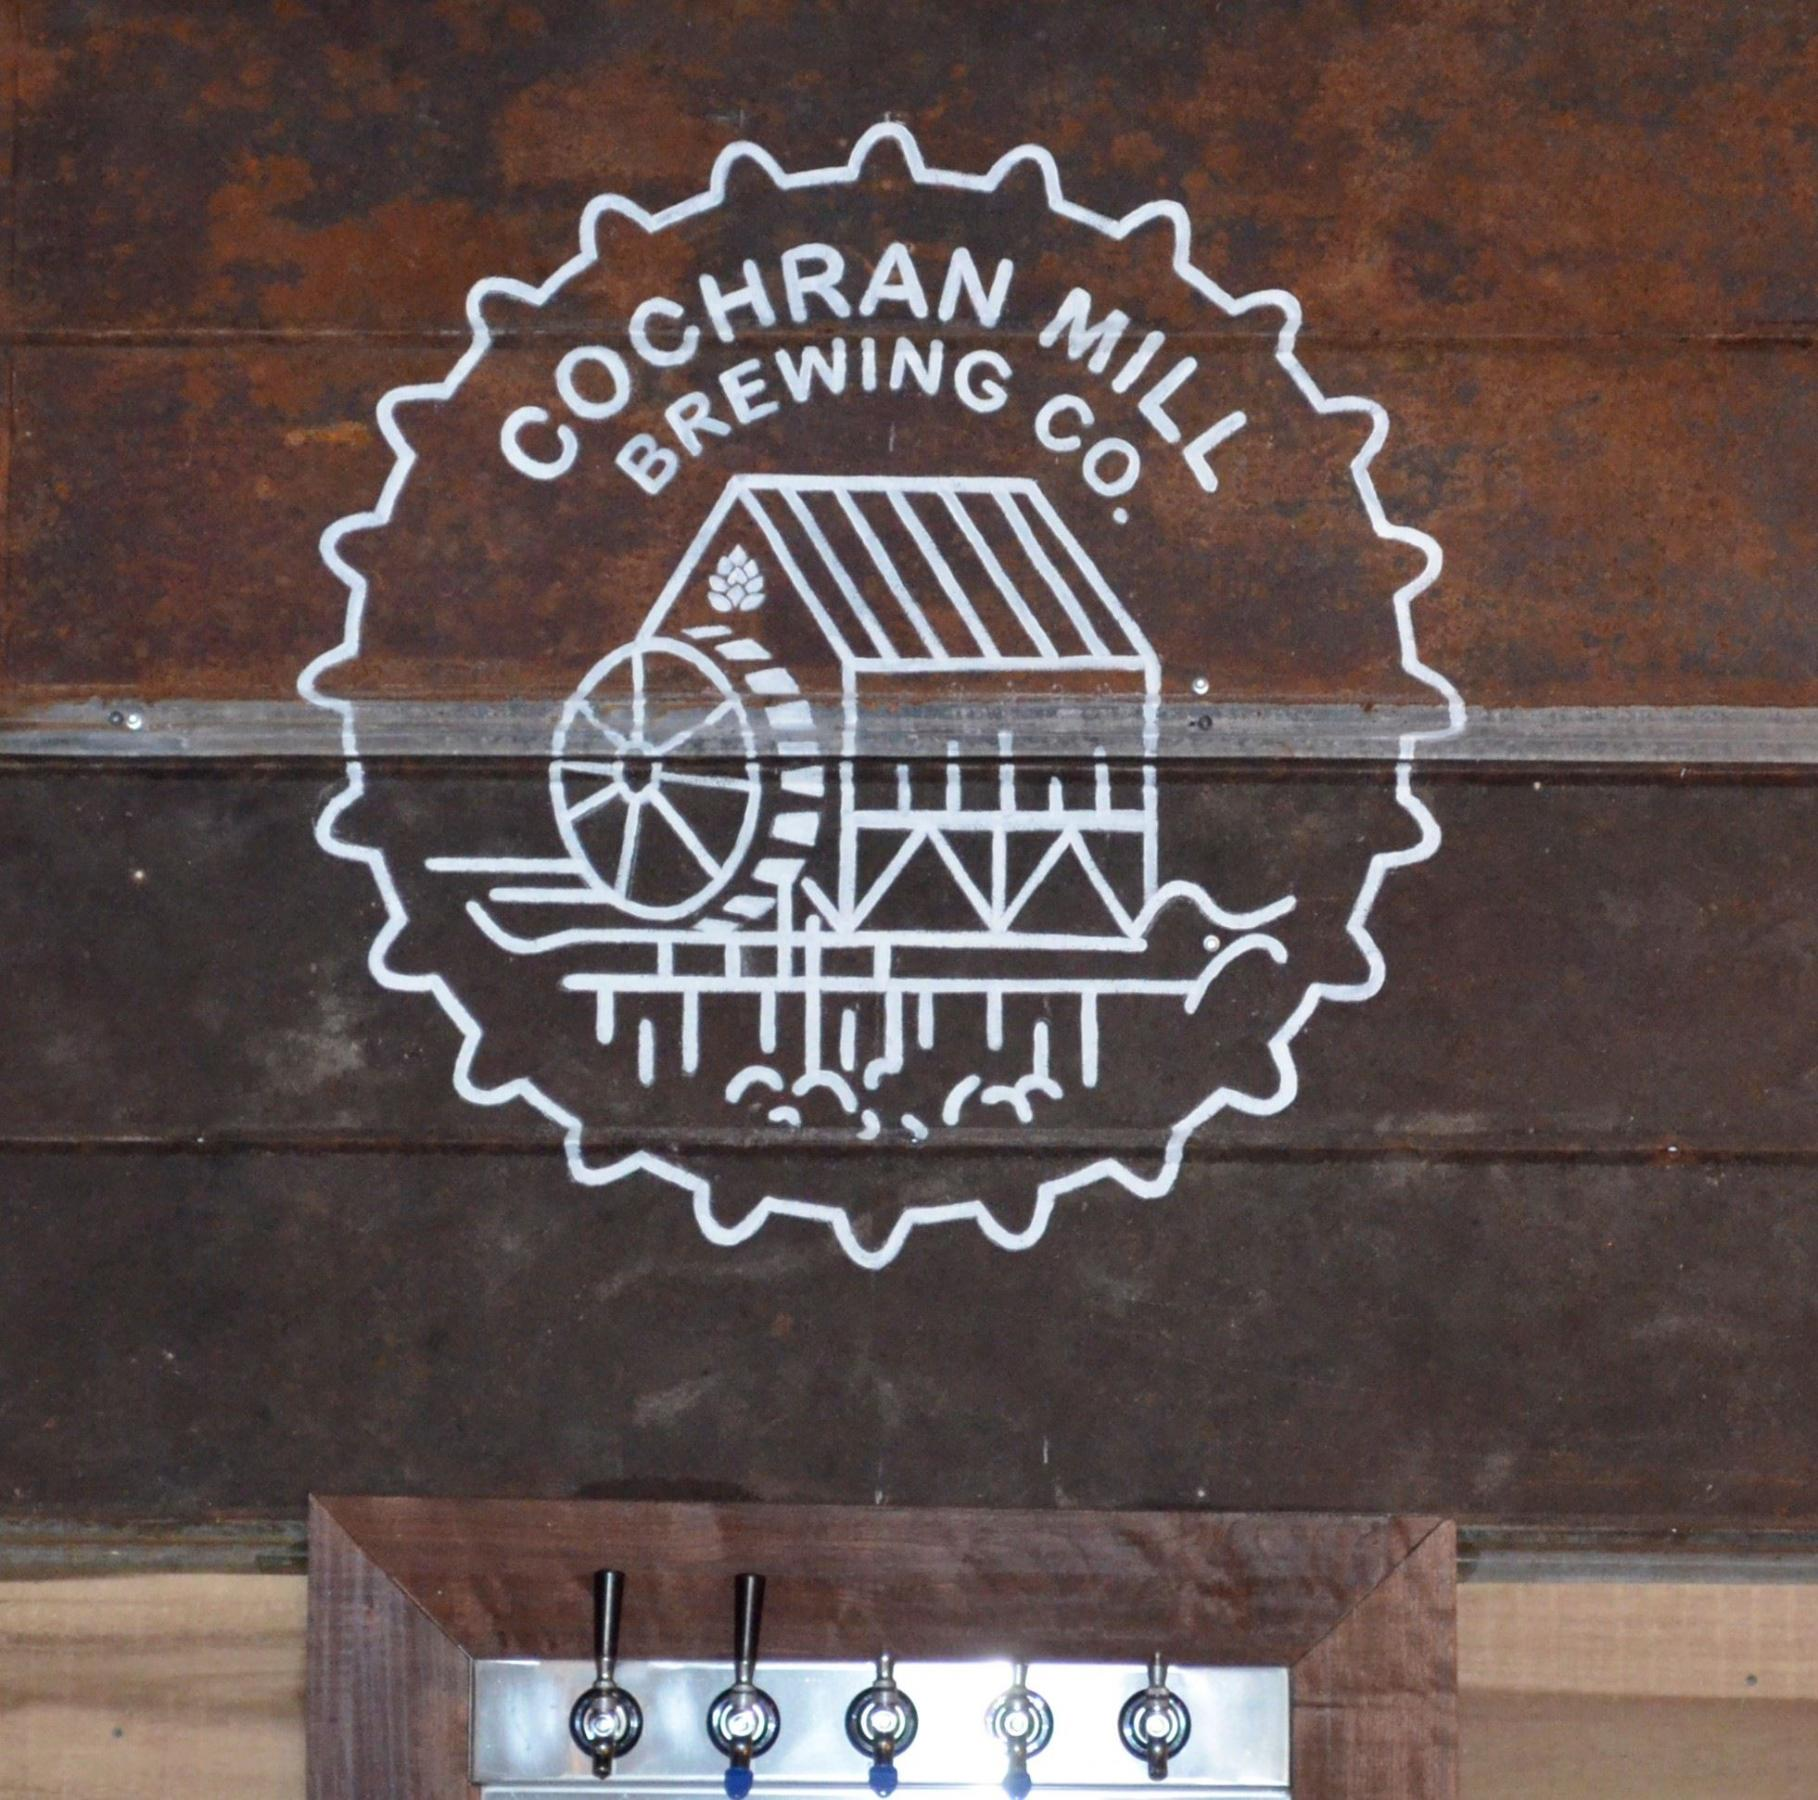 Cochran Mill Brewing Company